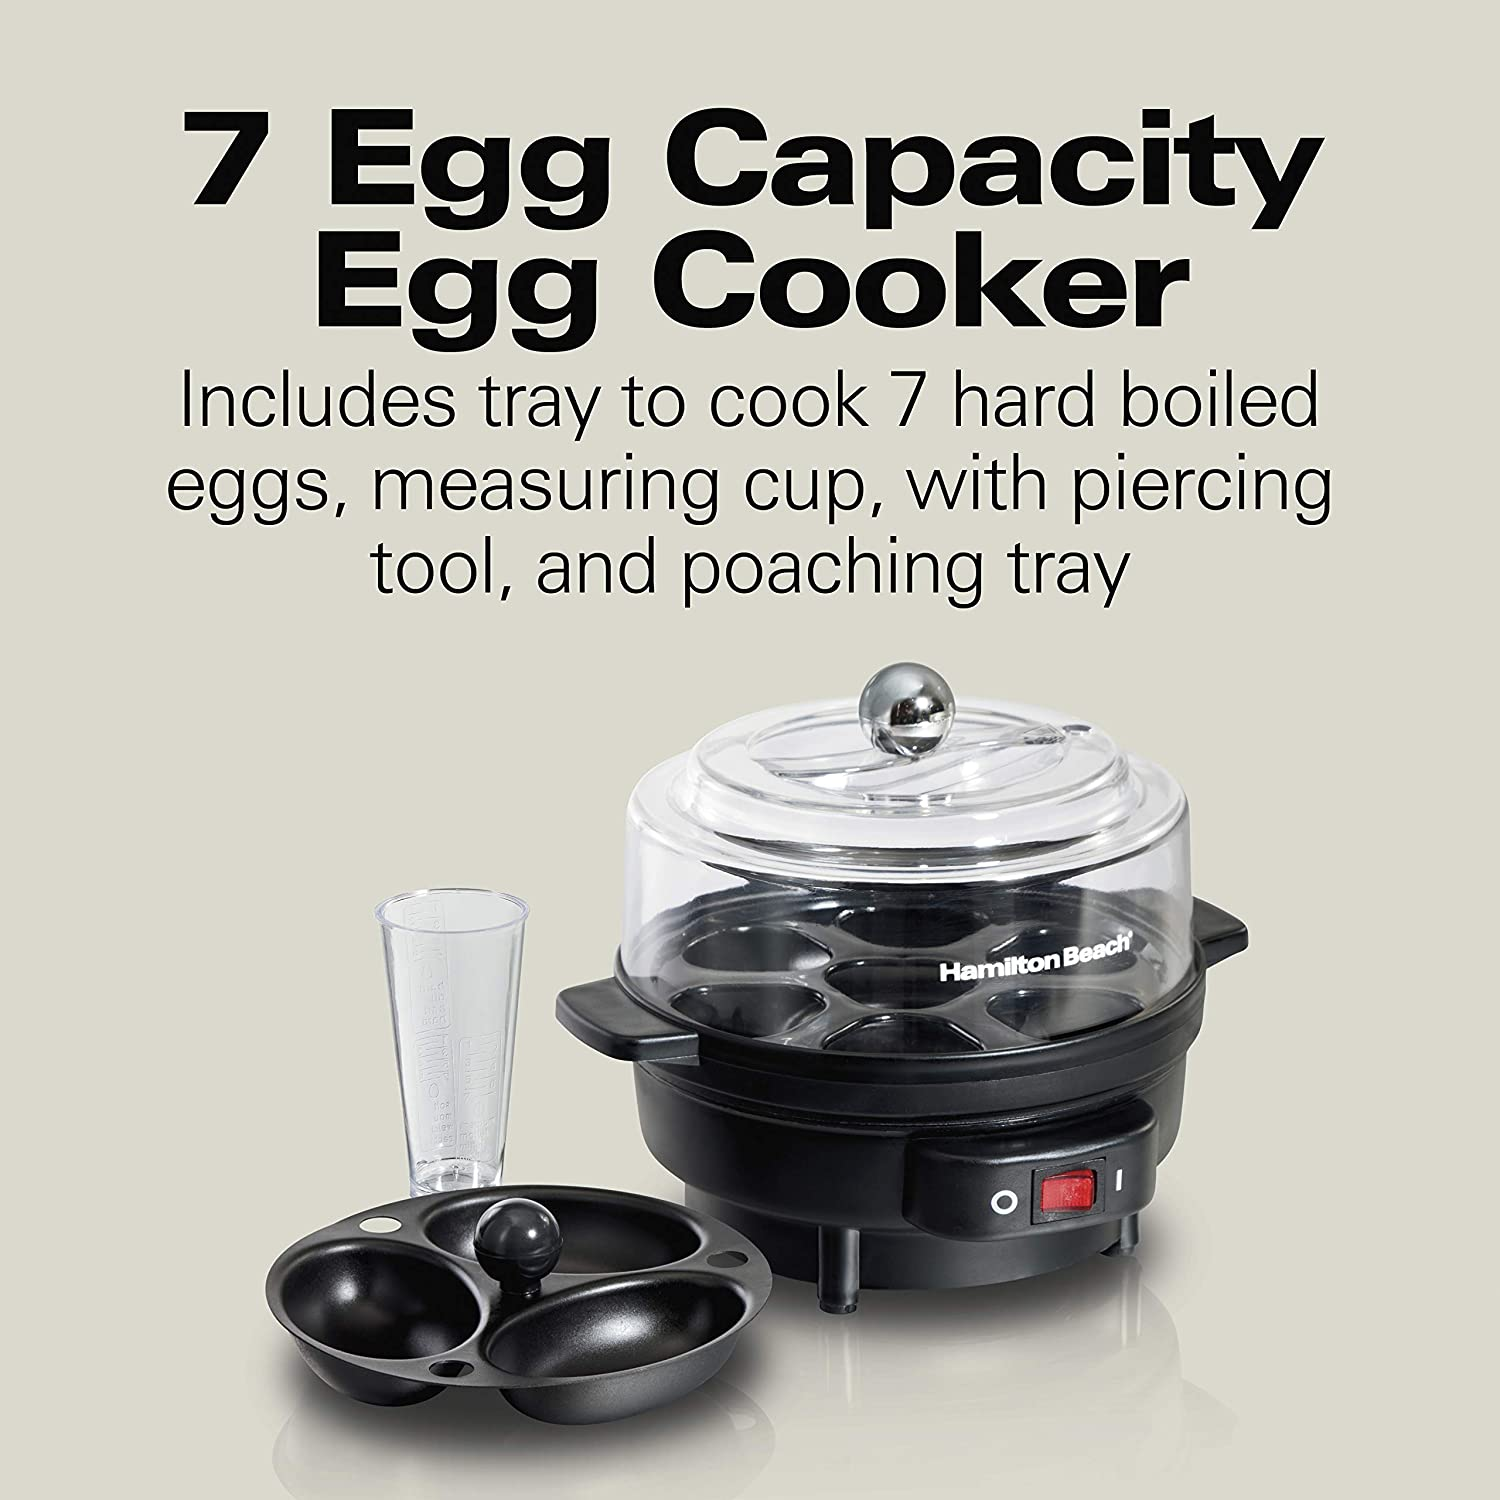 Cookware, Dining & Bar Have An Inquiring Mind 4 Eggs Egg Boiler Cooker Poacher Steamer Electric Boiled 7 Eggs Omelette Maker Home, Furniture & Diy